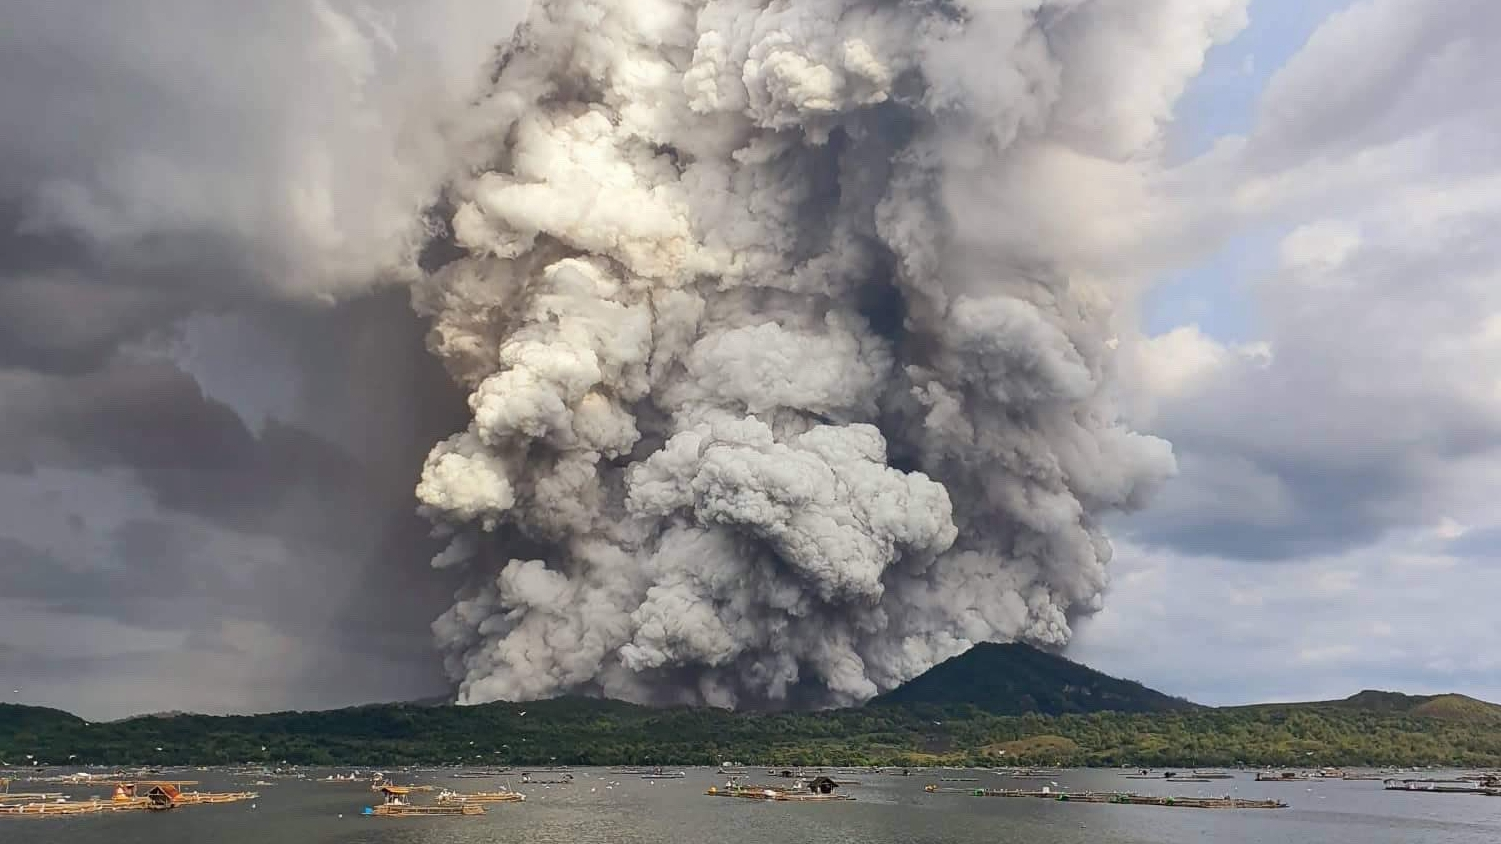 Live: Taal Volcano near Manila erupts, spewing ash and steam - CGTN